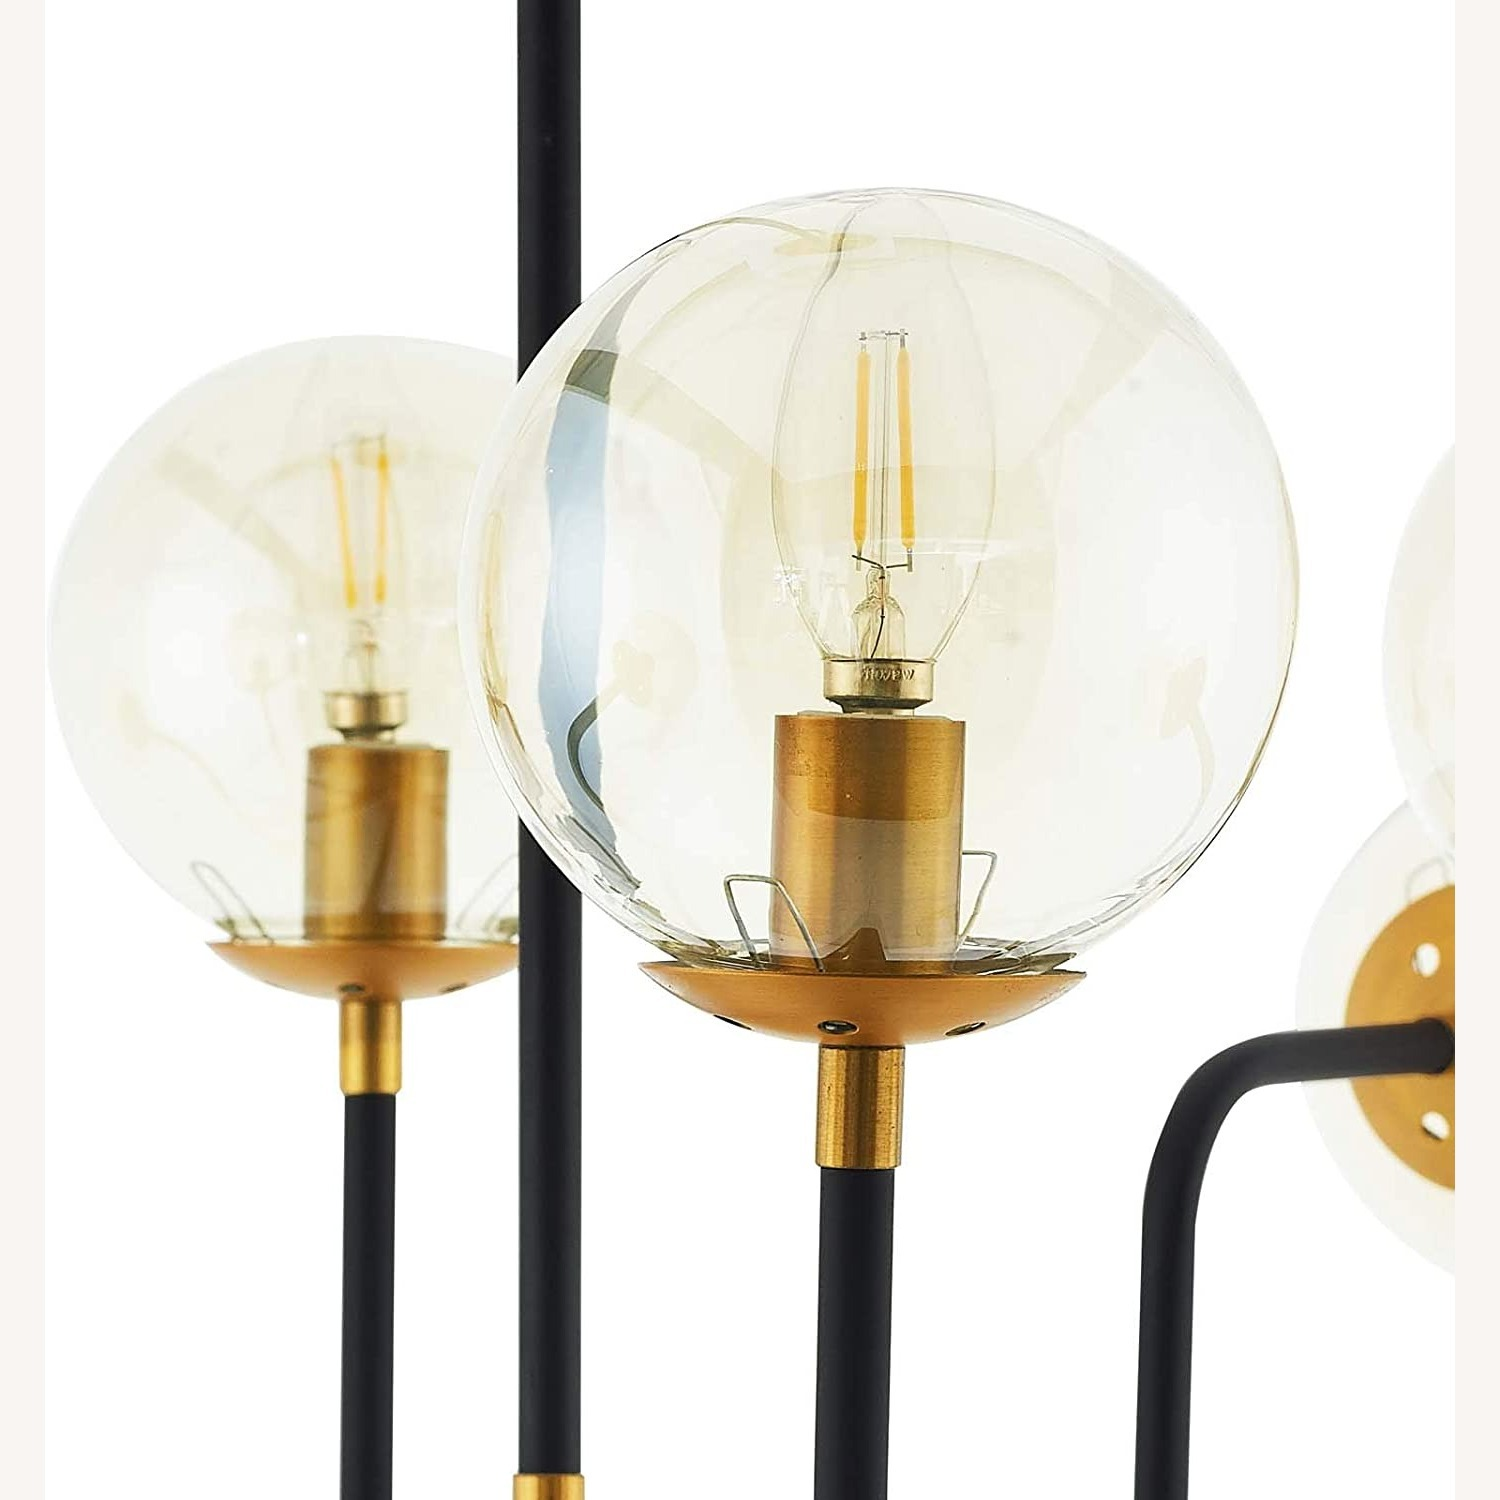 Classic Pendant Chandelier In Antique Brass Finish - image-1